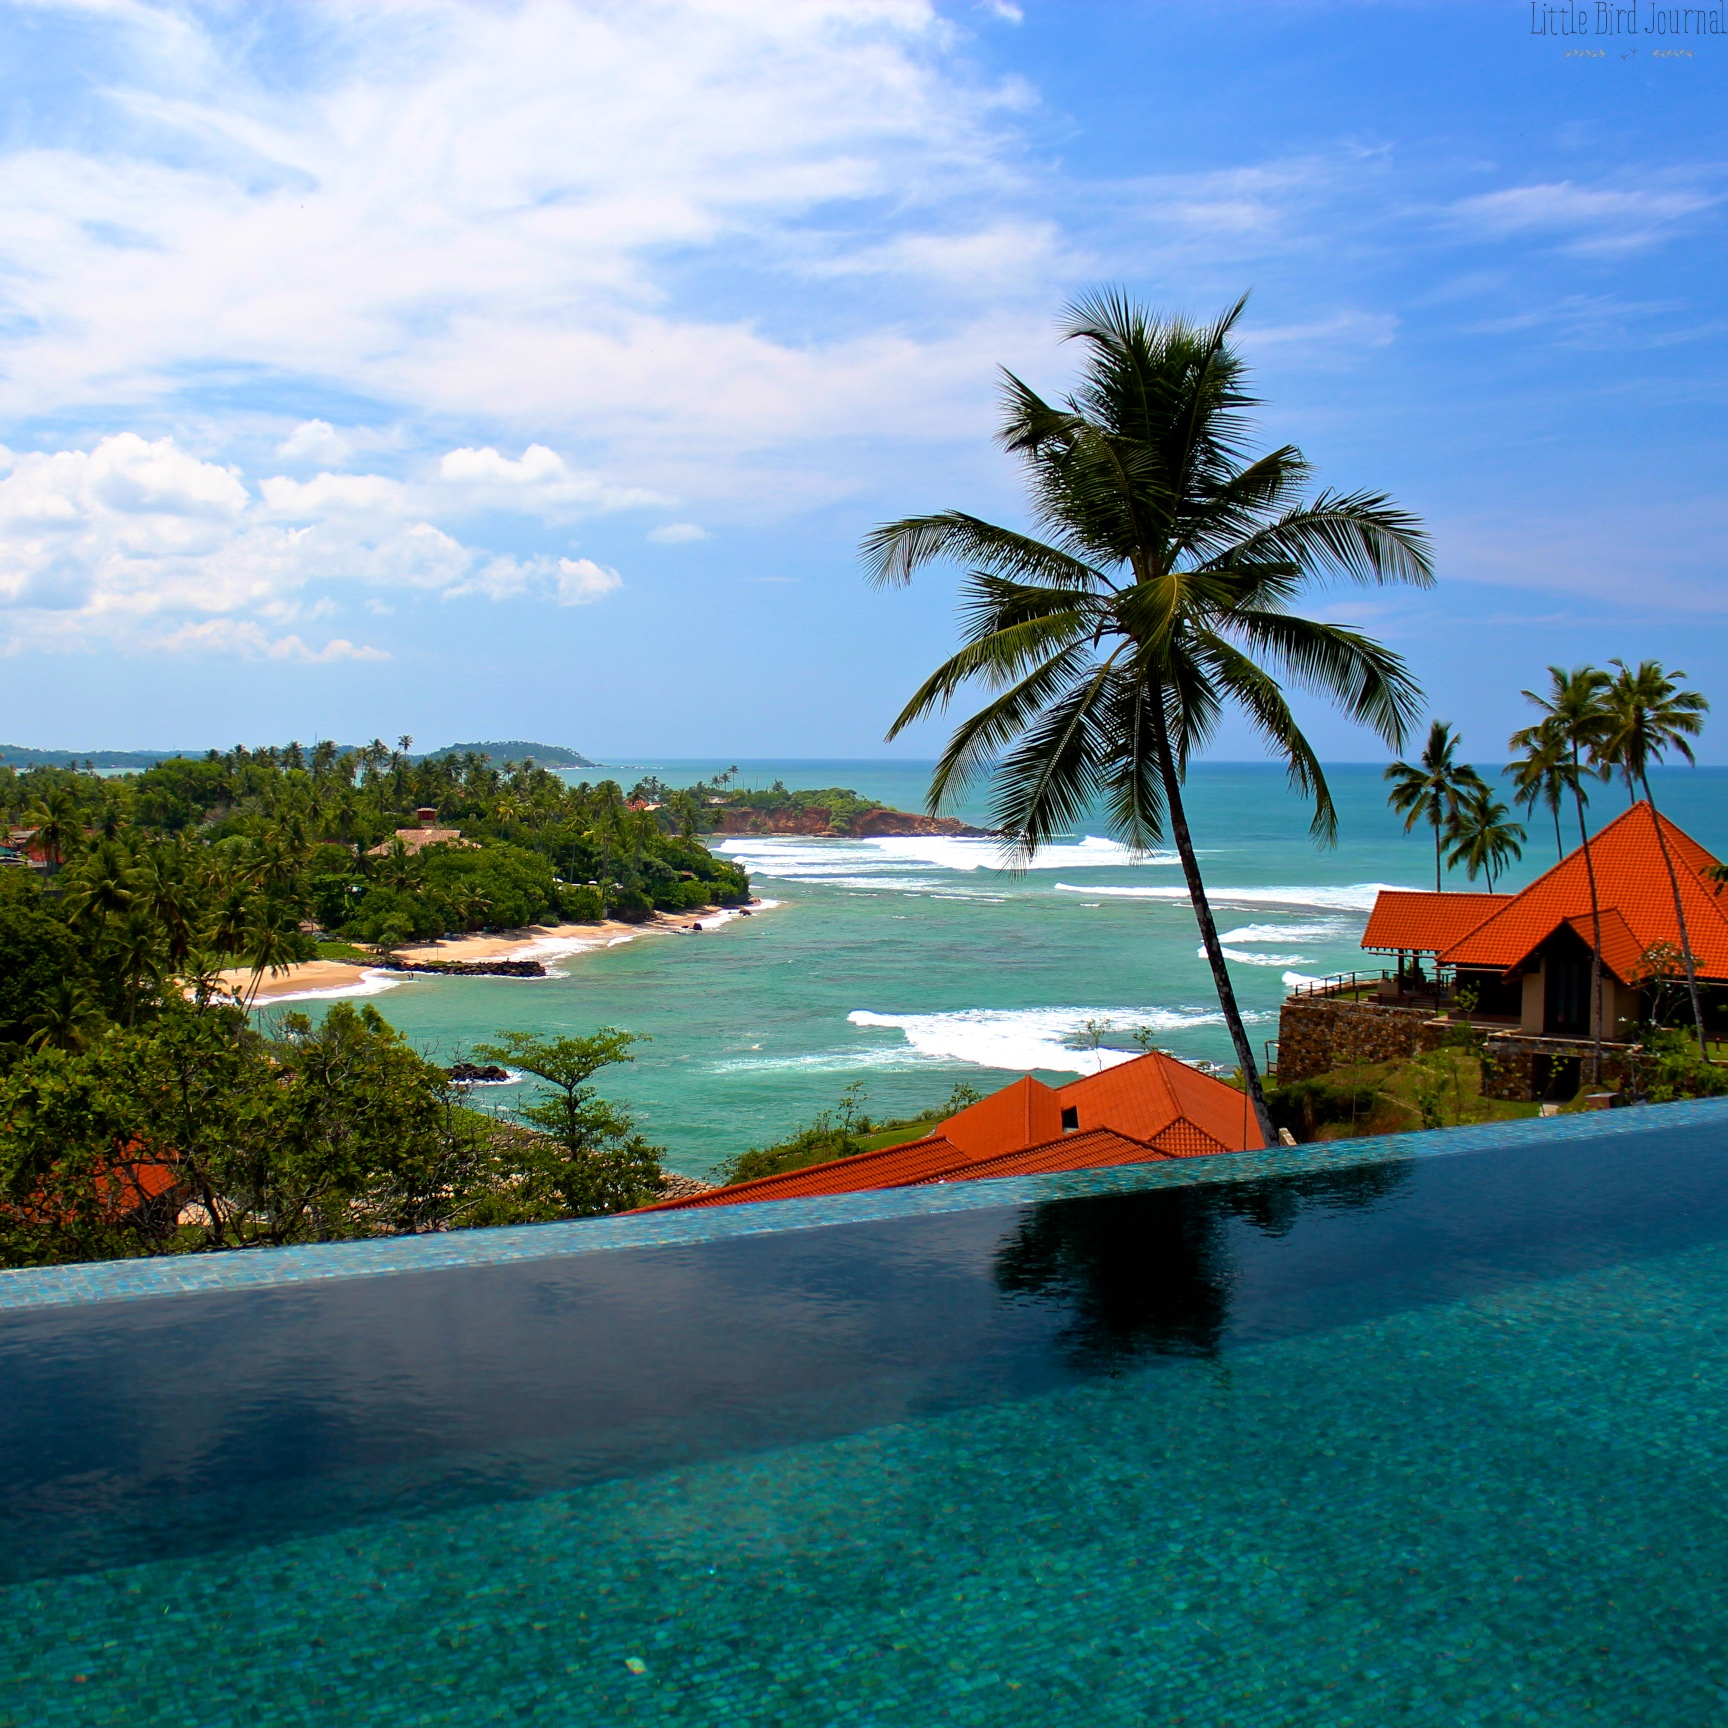 Cape Weligama Sri Lanka A Captivating Clifftop Retreat Little Bird Journallittle Bird Journal